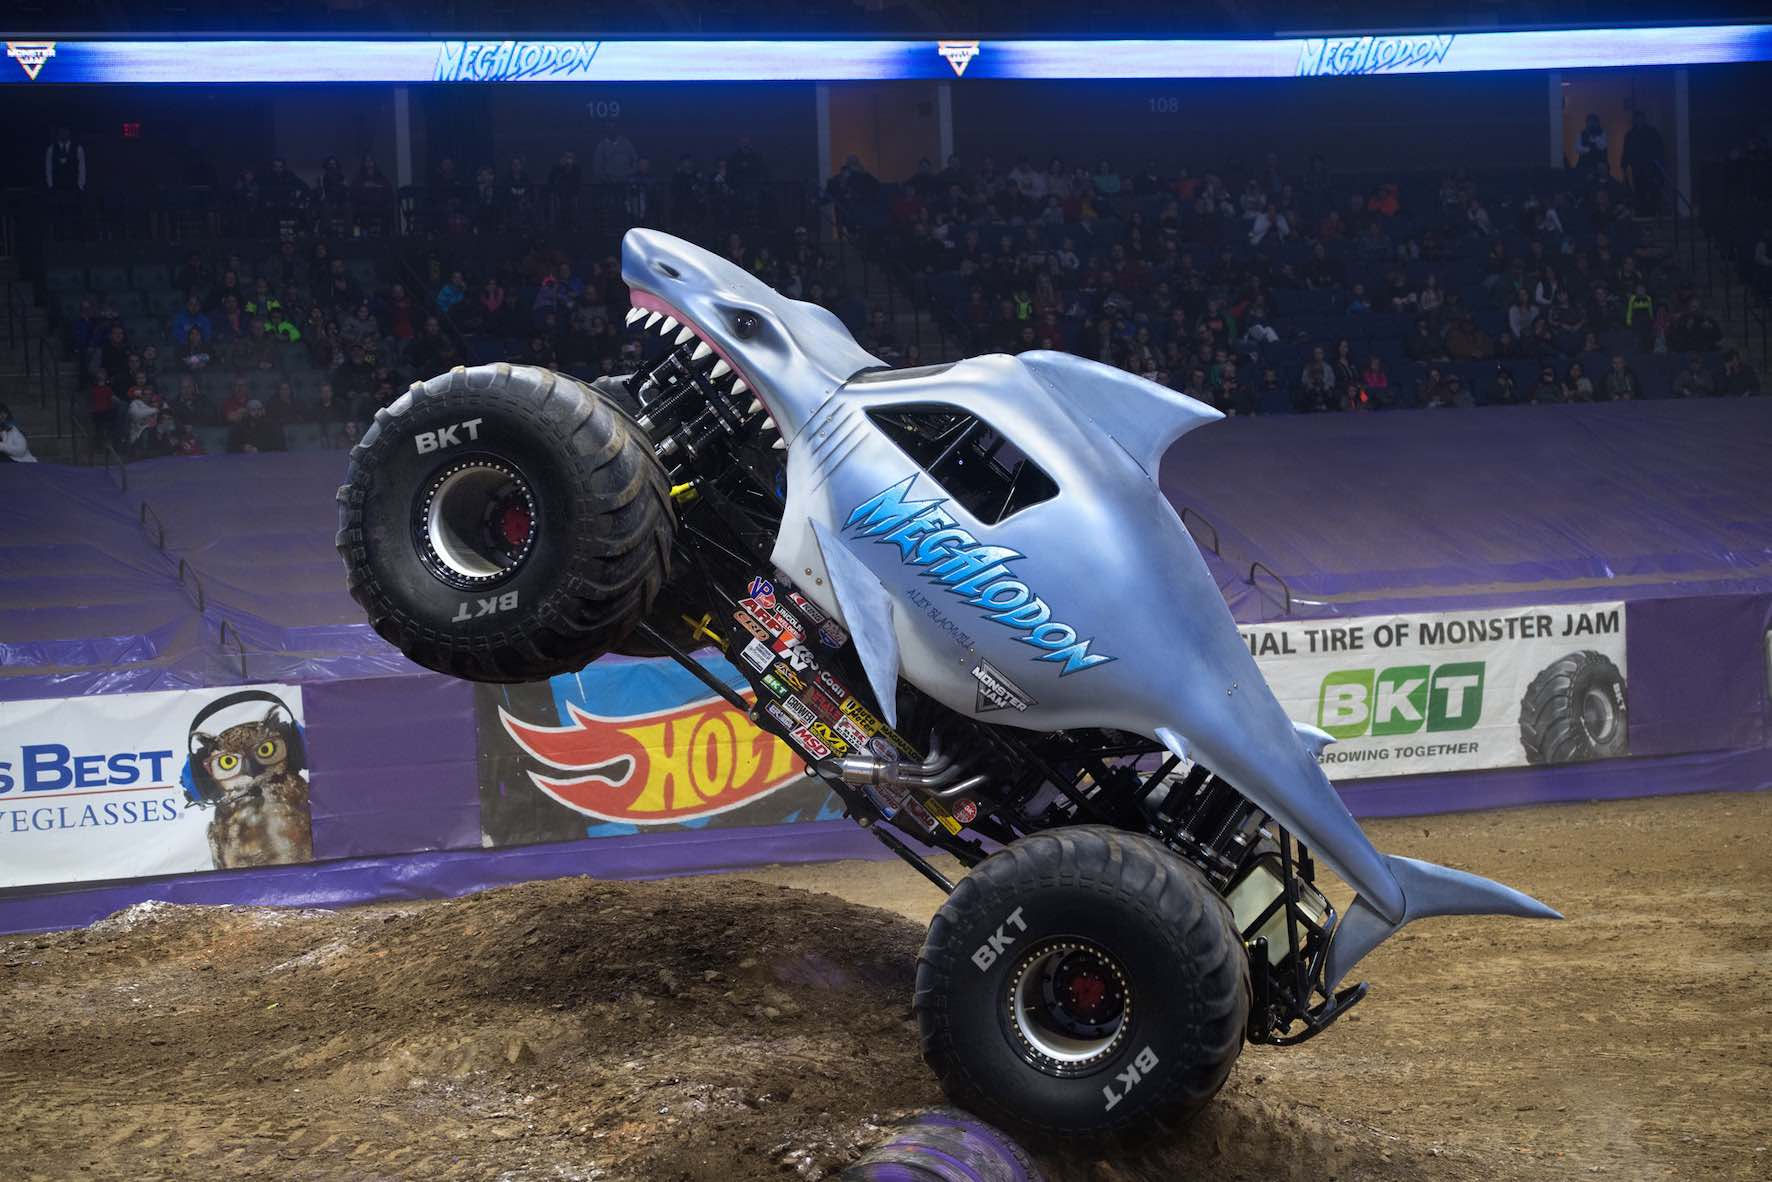 The Megaladon Monster Truck is set to perform at Monster Jam in South Africa